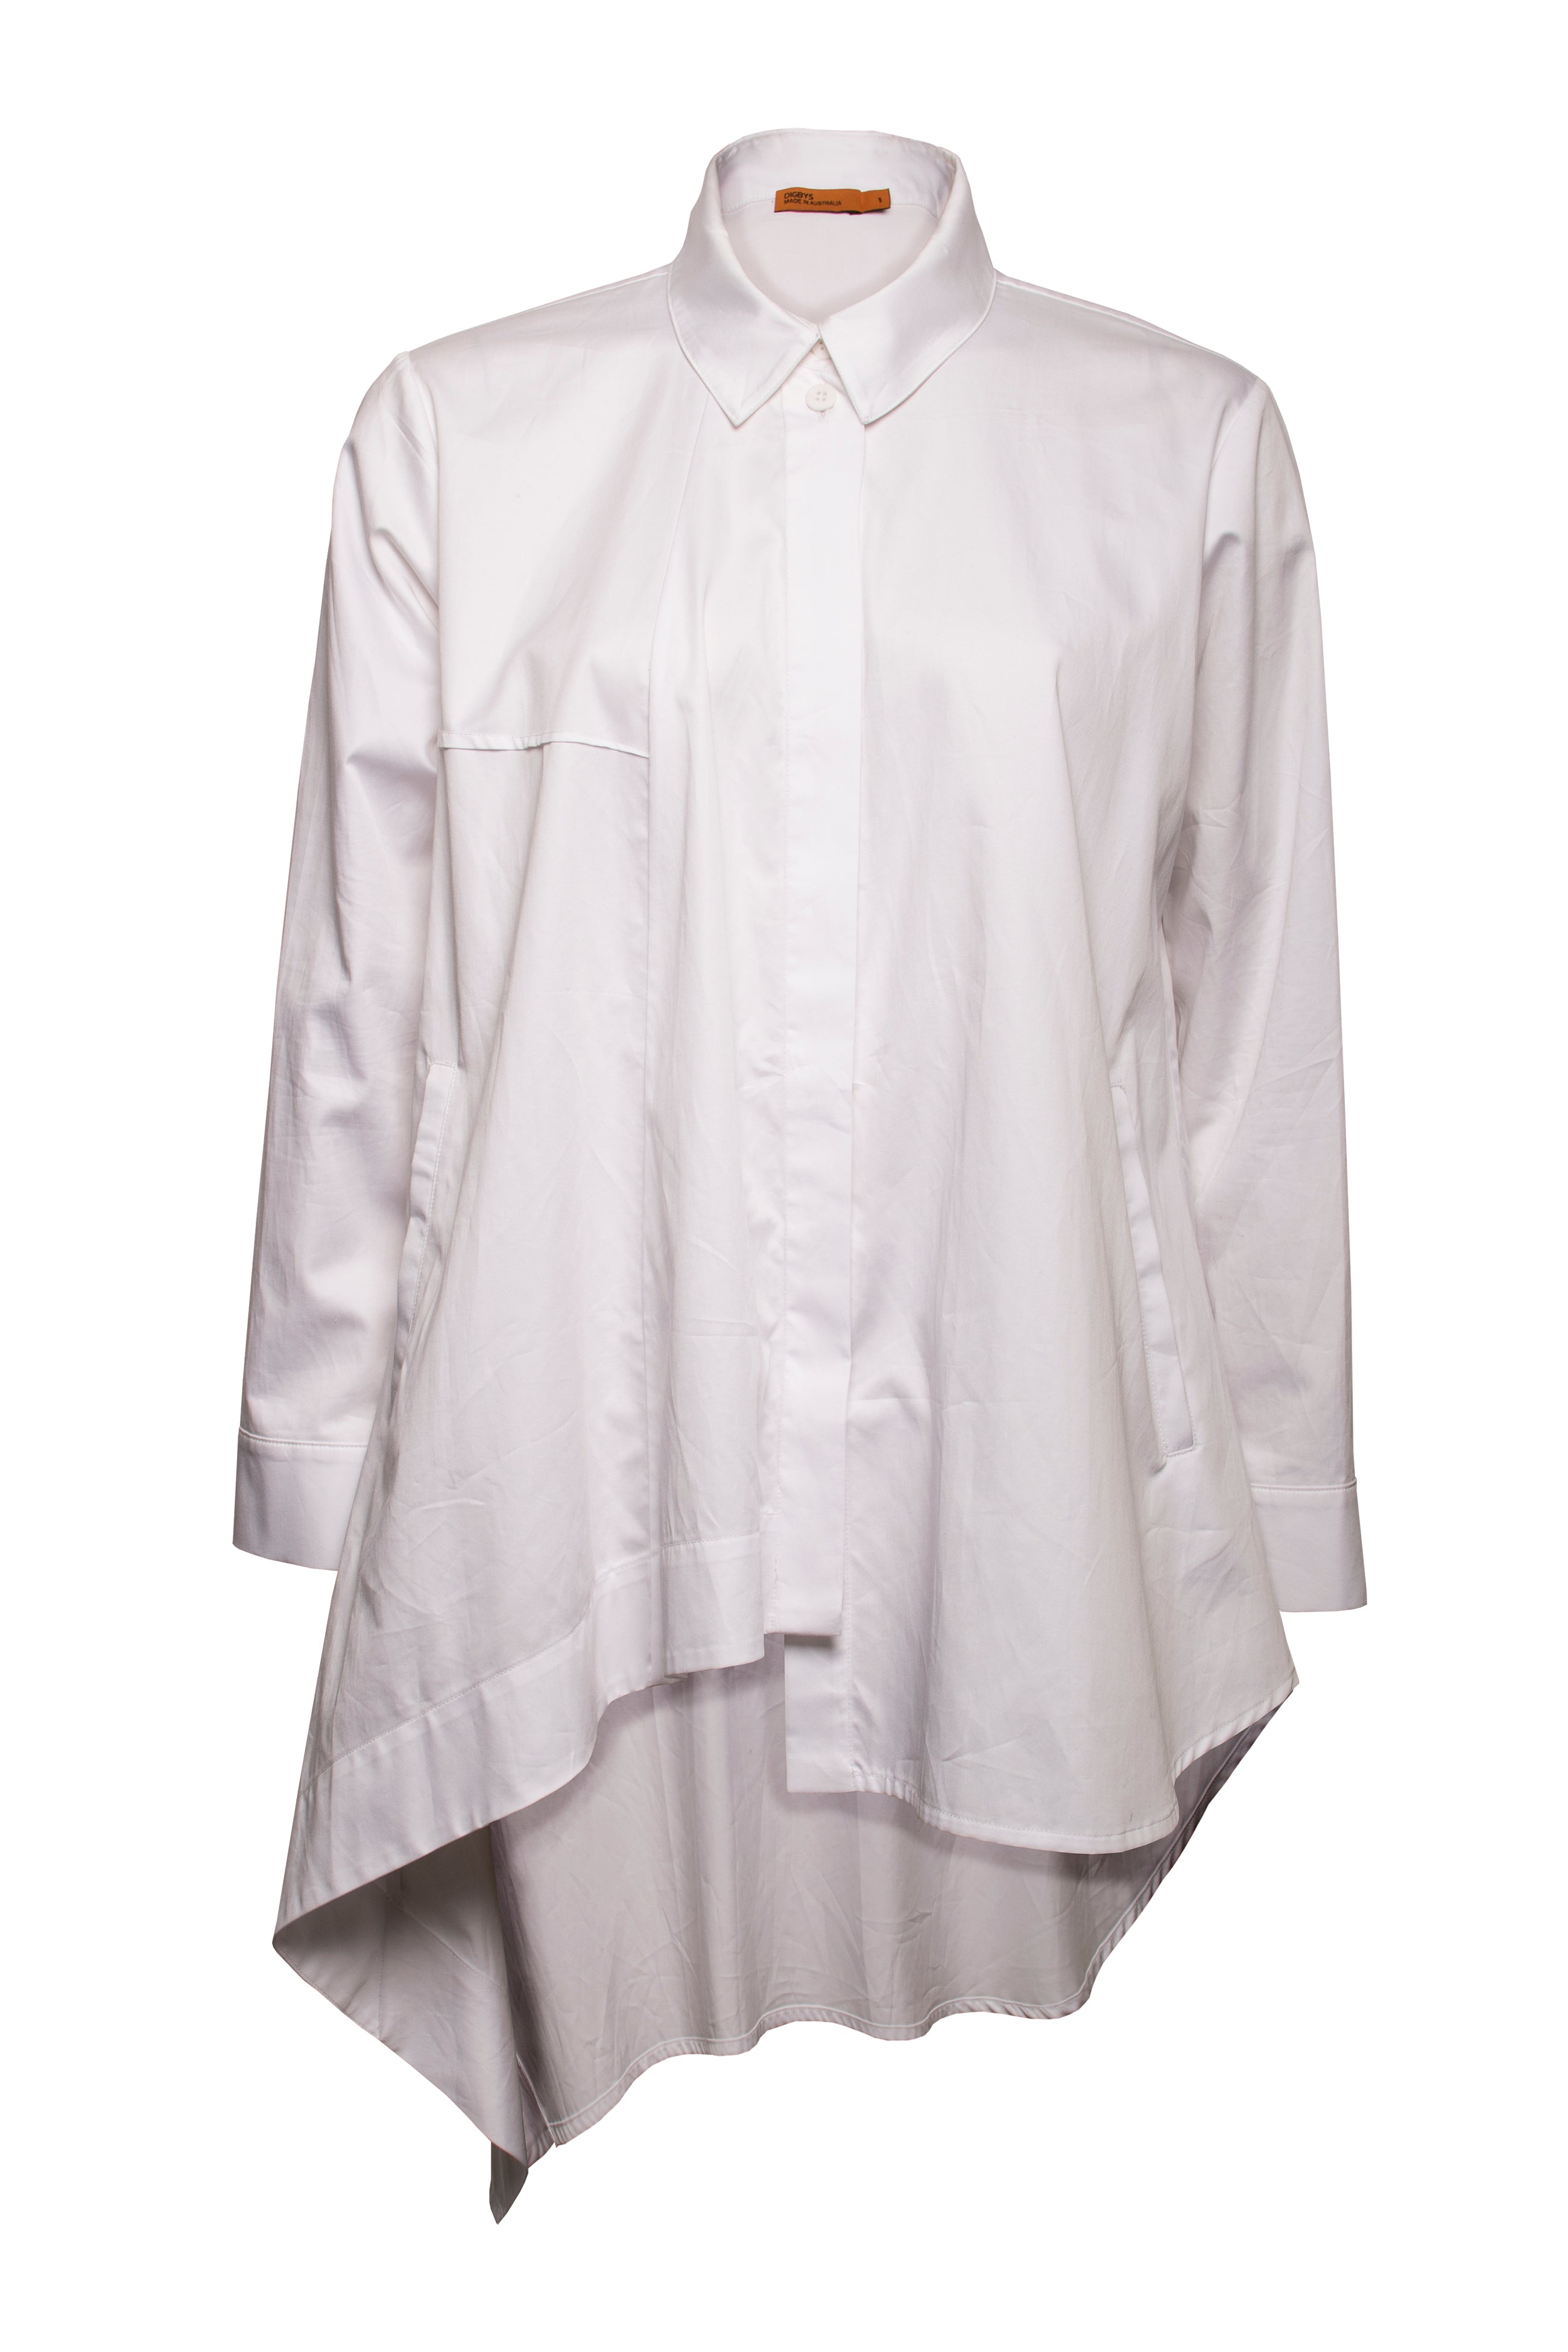 White Cotton Long Asymmetric Shirt 6208